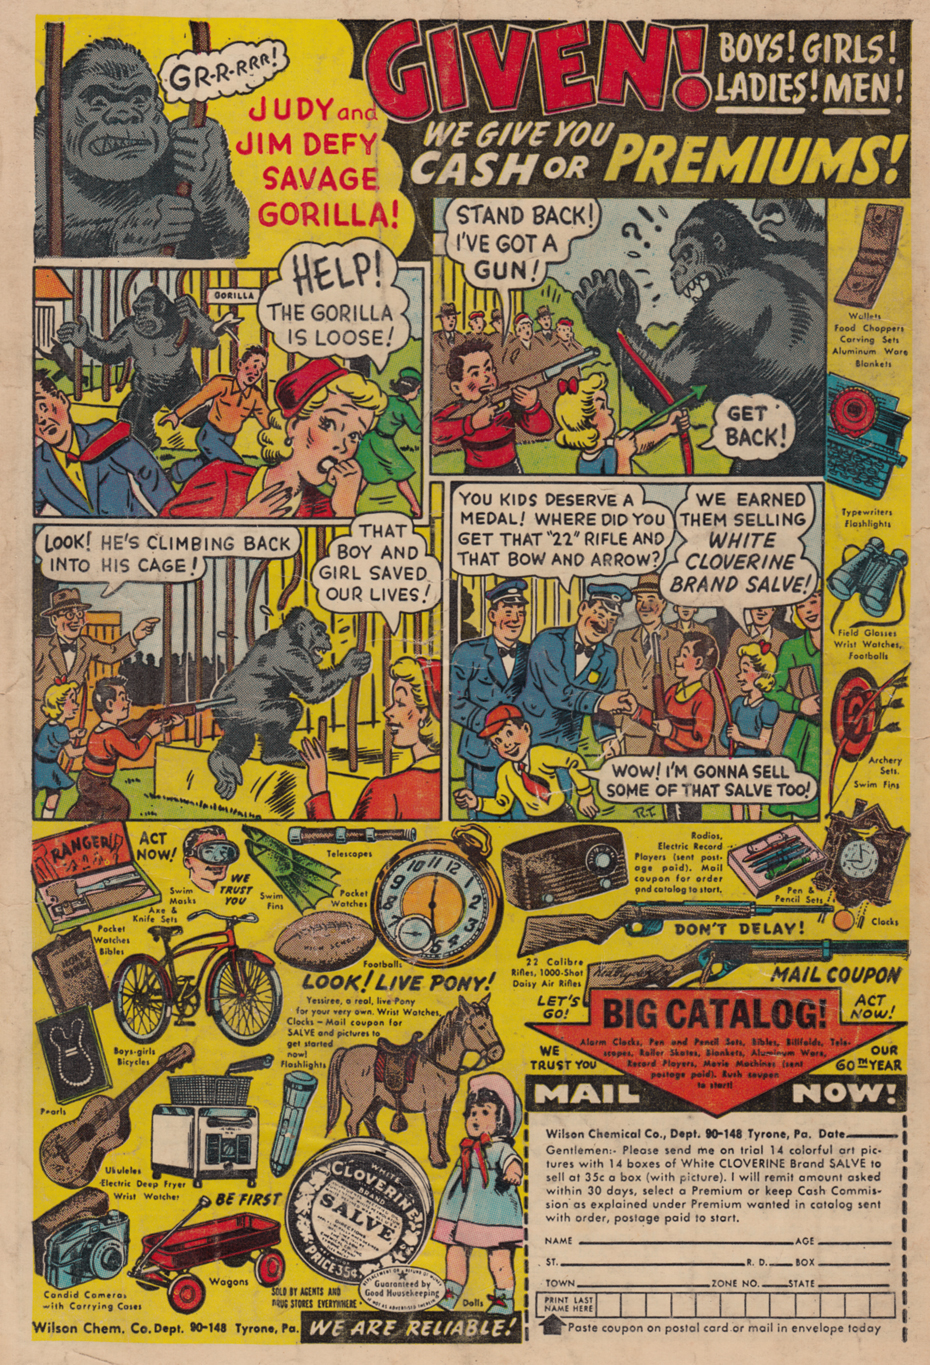 3 Gorilla ad - Battle n41 july 55